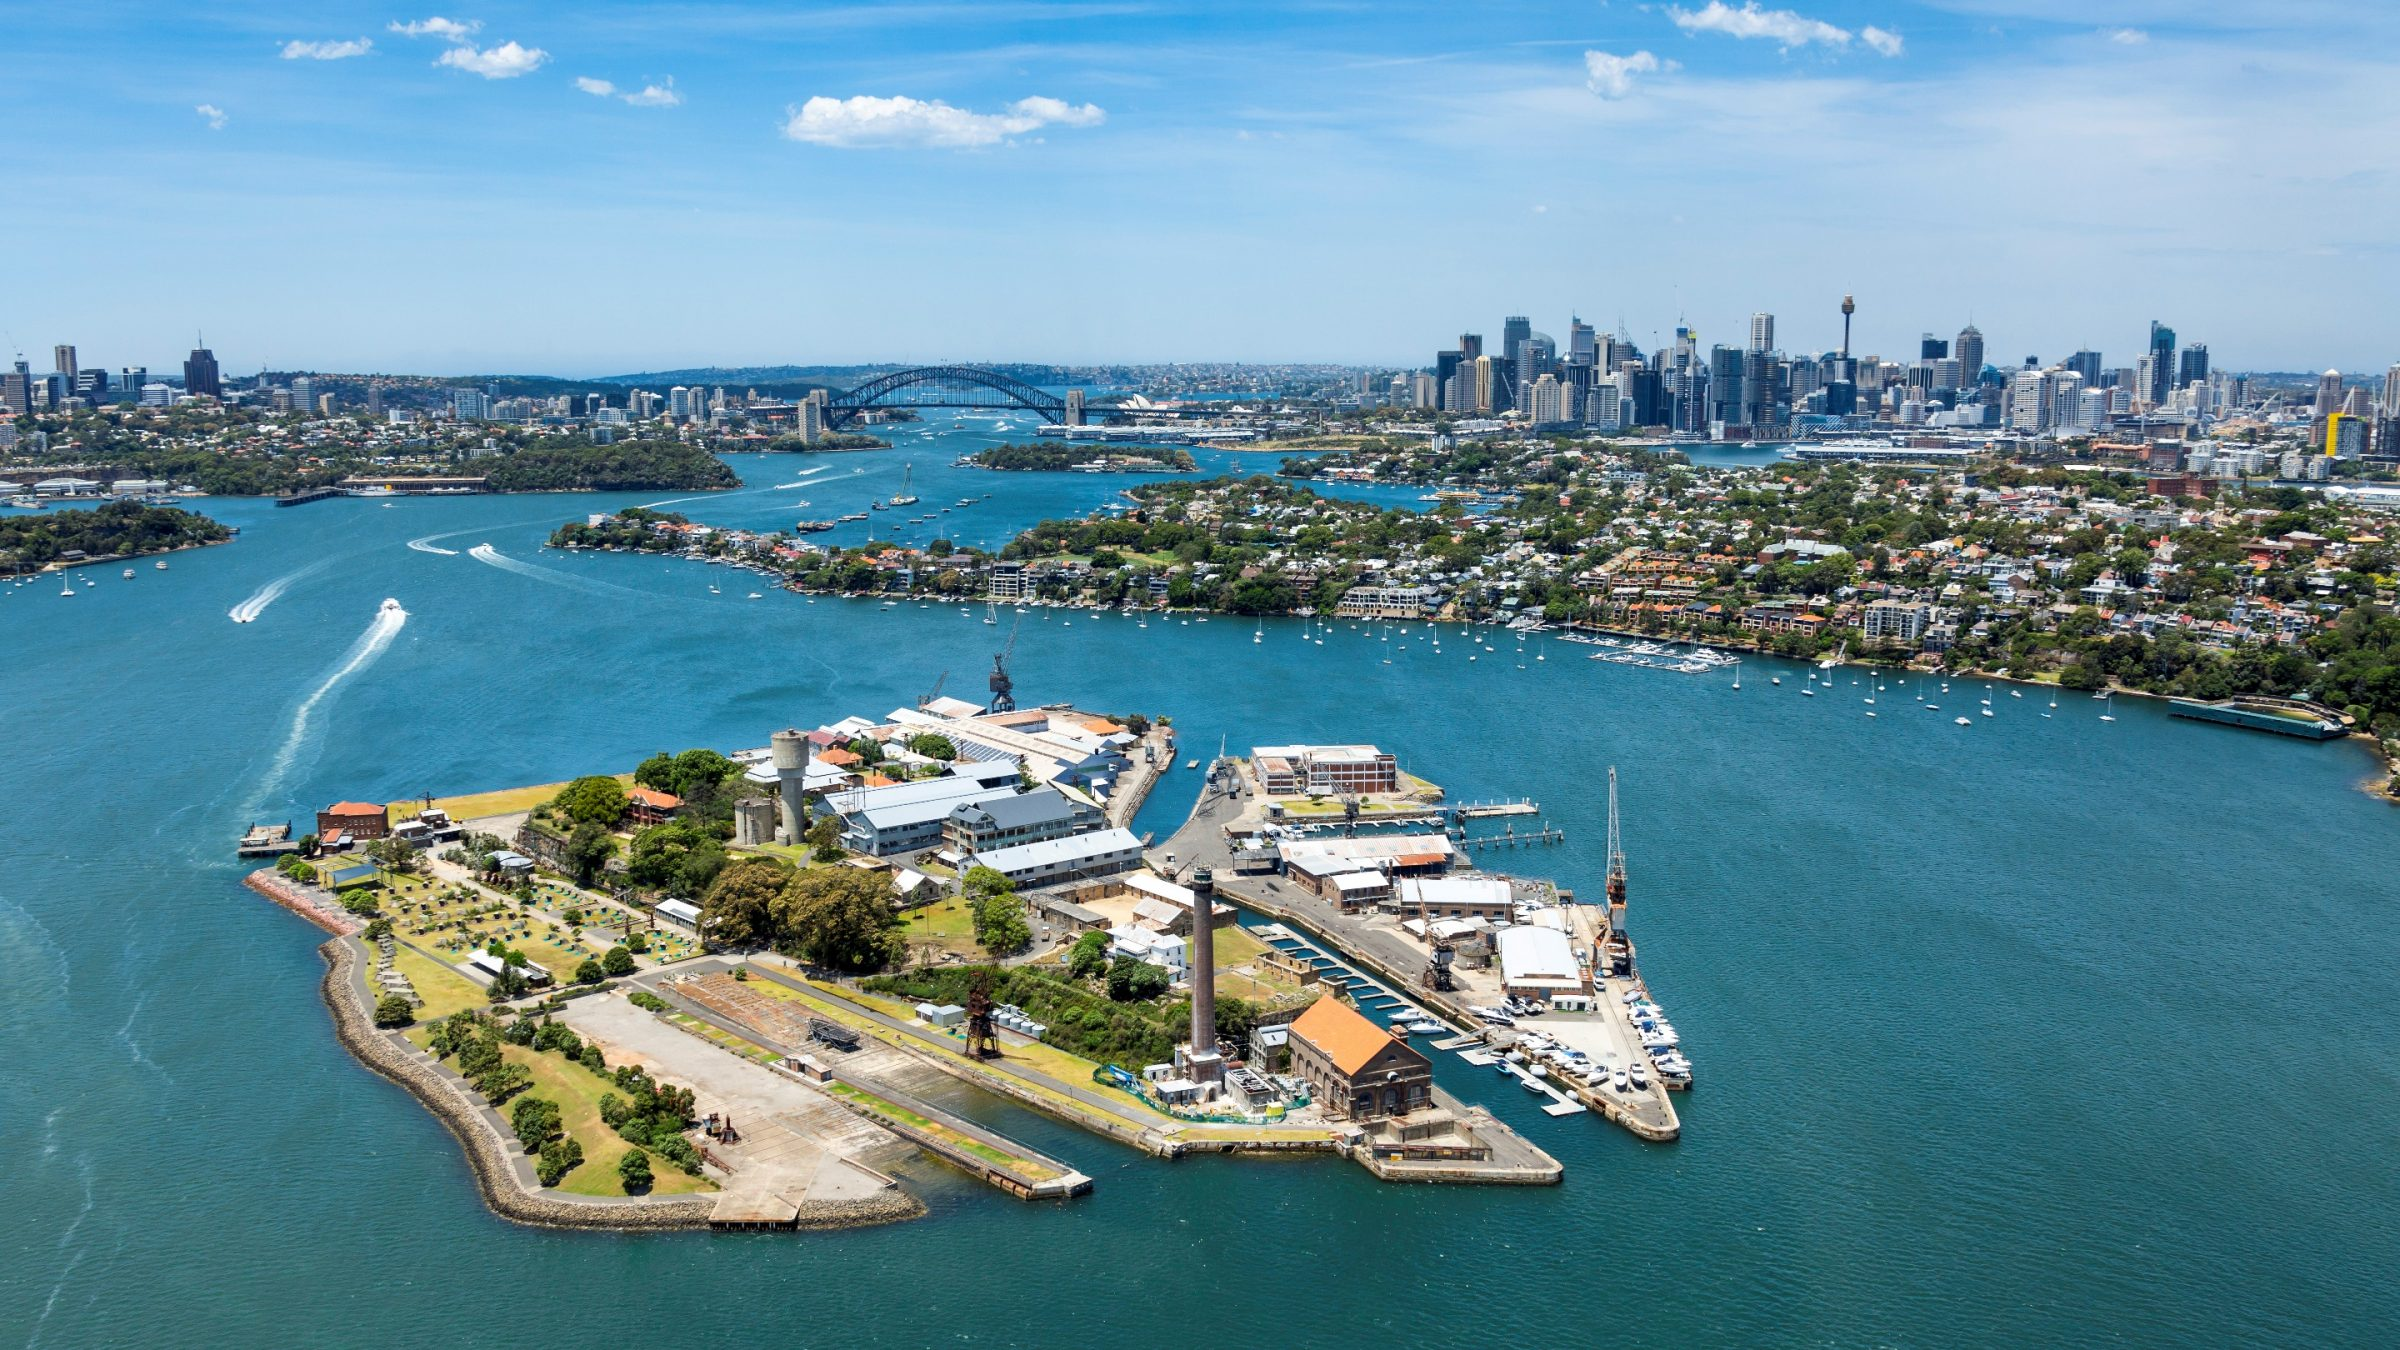 Cockatoo-Island-aerial-Credit-Mark-Merton-2400x1350.jpg